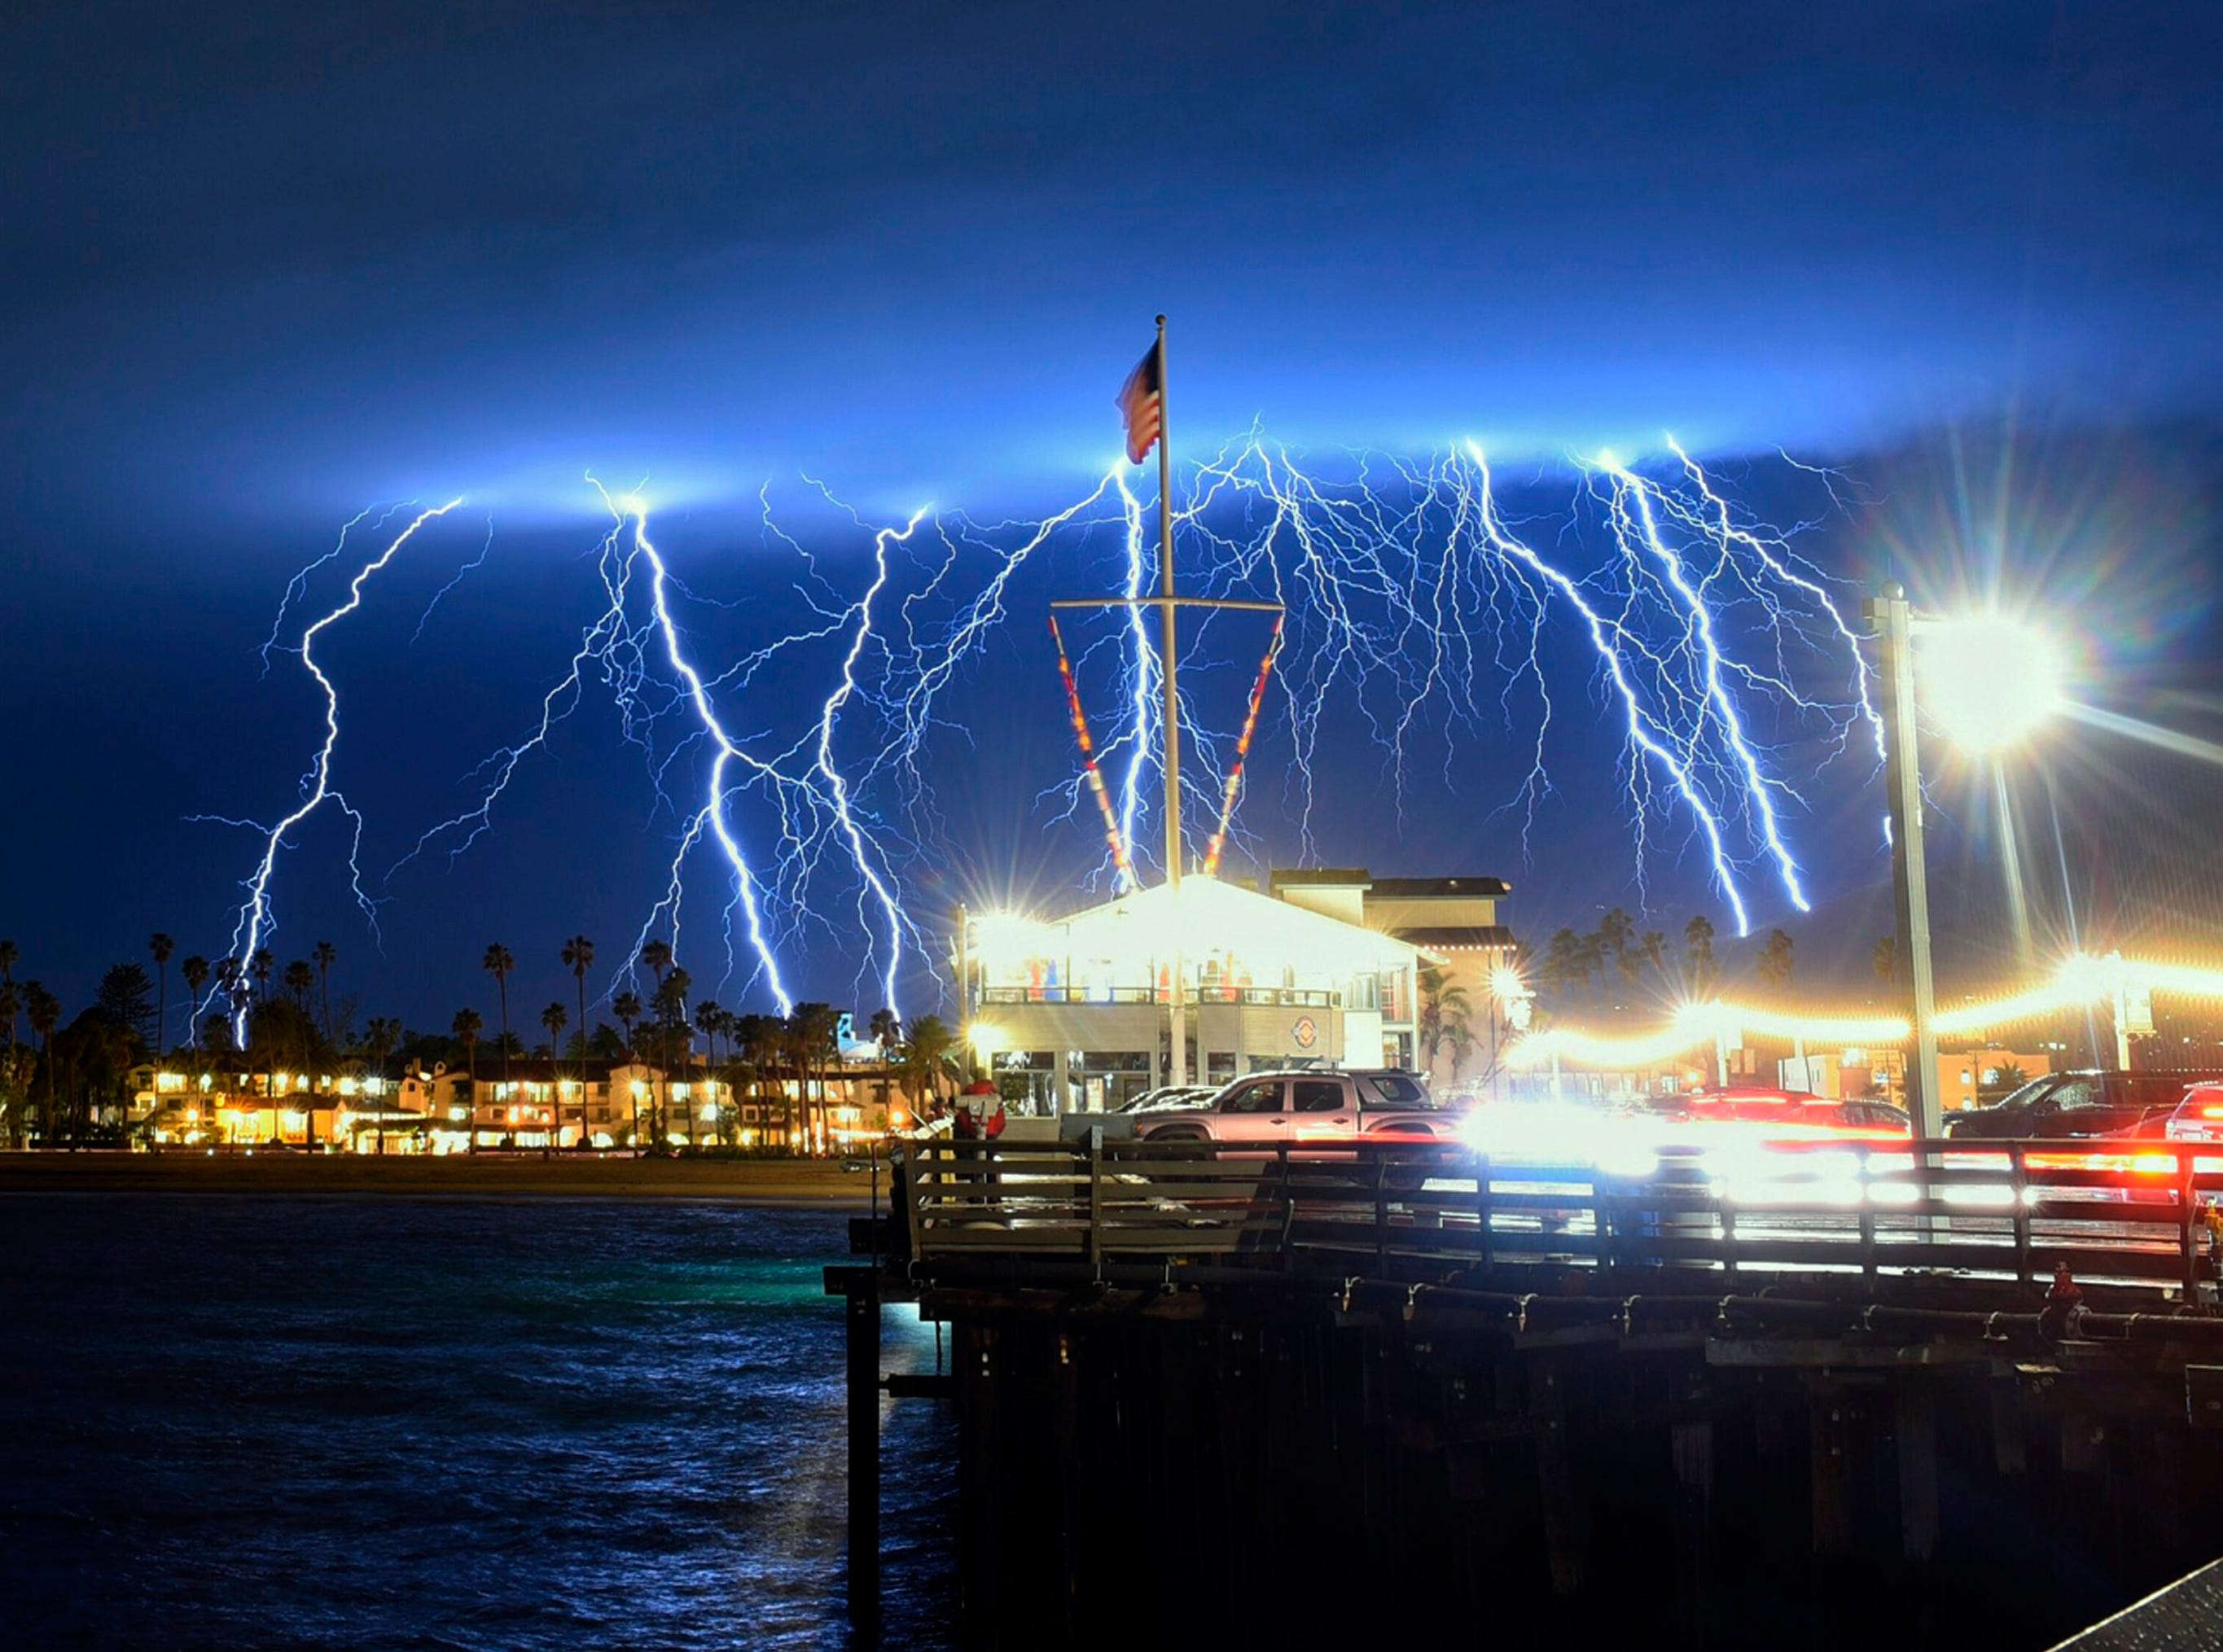 This time exposure photo provided by the Santa Barbara County Fire Department shows a series of lightning strikes over Santa Barbara, Calif., seen from Stearns Wharf in the city's harbor, Tuesday evening, March 5, 2019. A storm soaking California on Wednesday could trigger mudslides in wildfire burn areas where thousands of residents are under evacuation orders, authorities warned. (Mike Eliason/Santa Barbara County Fire Department via AP) ORG XMIT: LA221